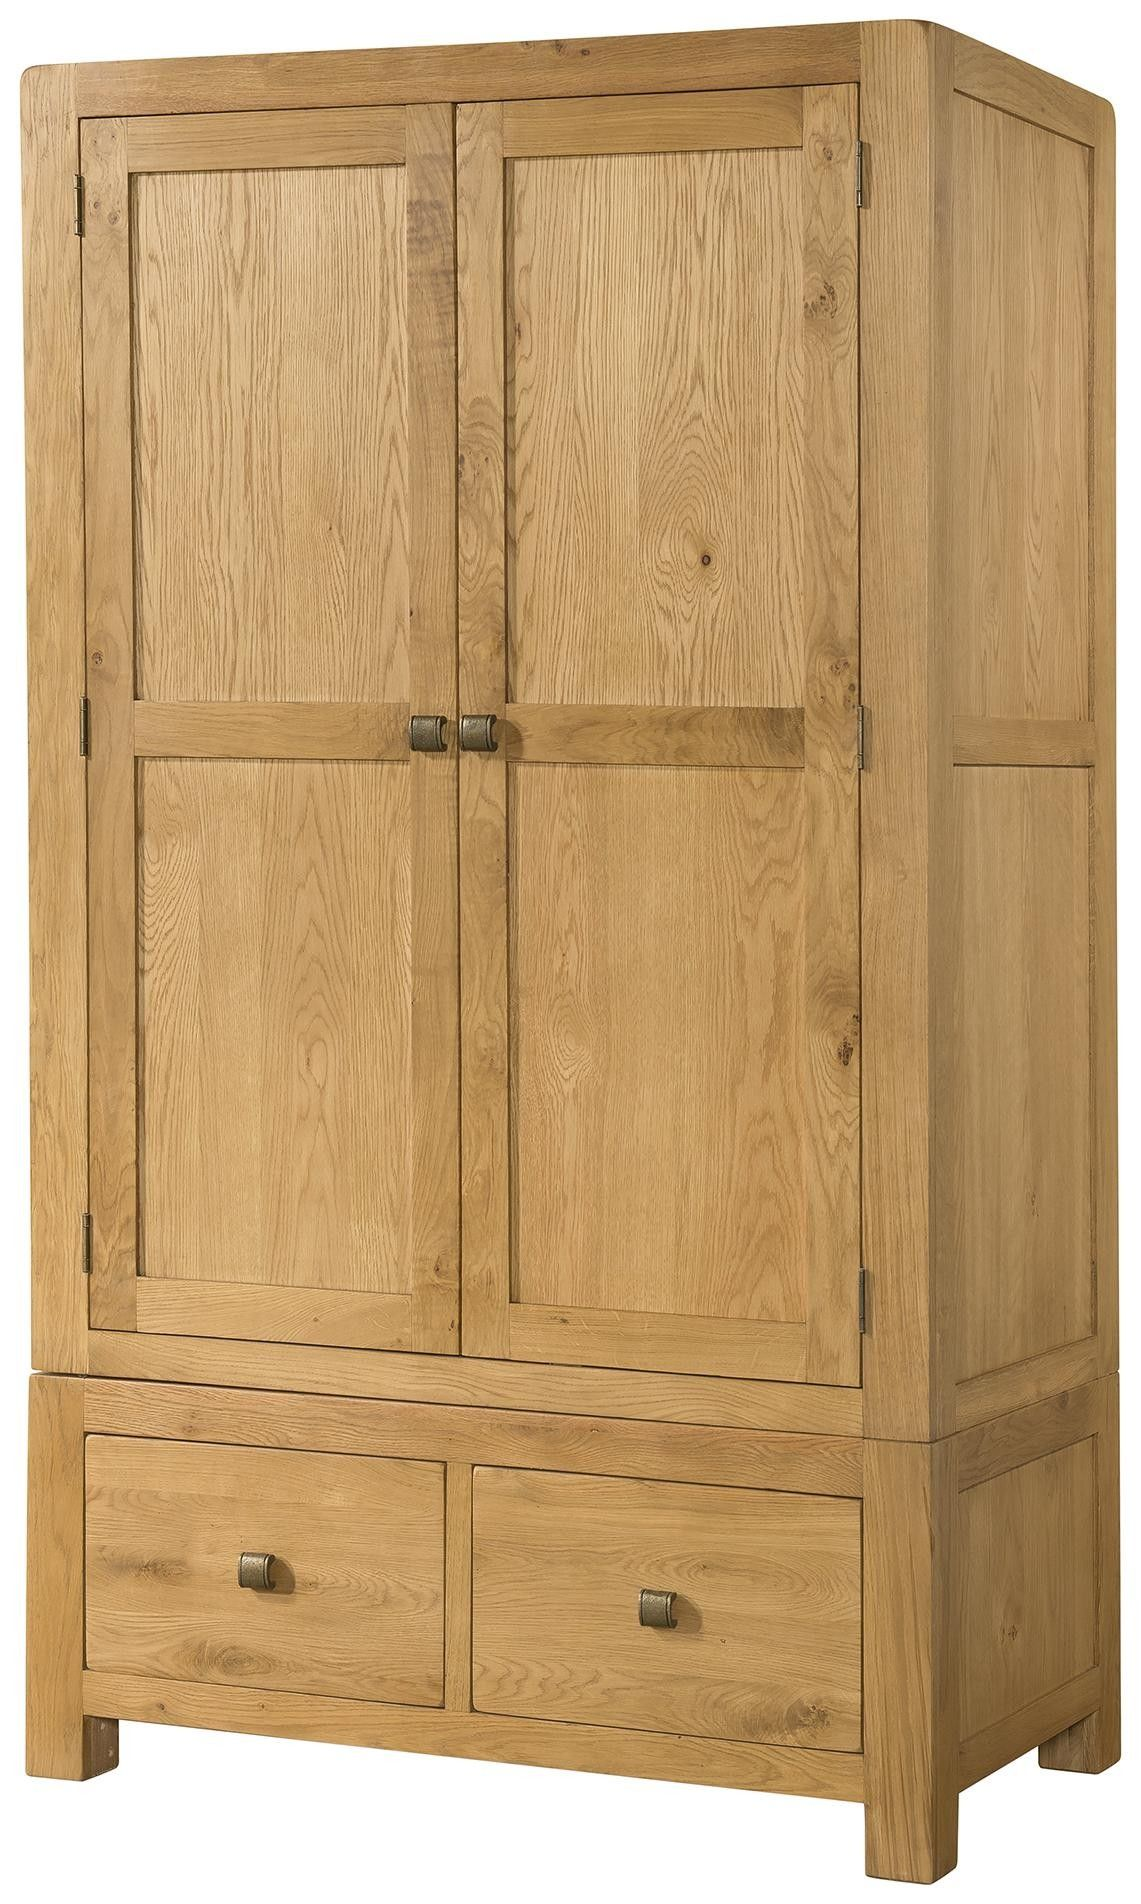 Schrankbetten Bei Otto Radford Oak Double Wardrobe With 2 Drawers To Build Oak